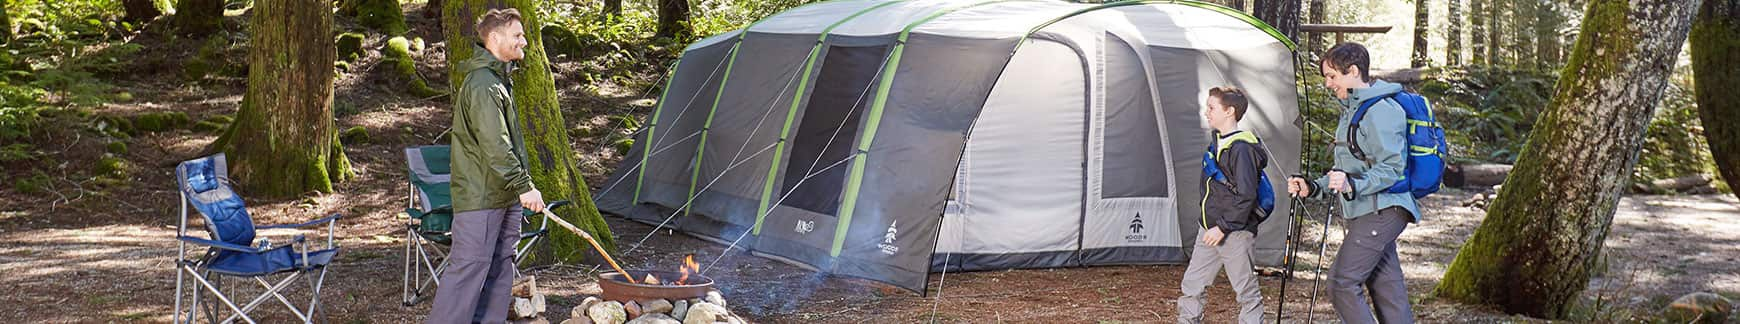 If You Love Hiking Backng And Camping This Is The Place For Camp Furniture Lights Coolers Sleeping Bags Tentore